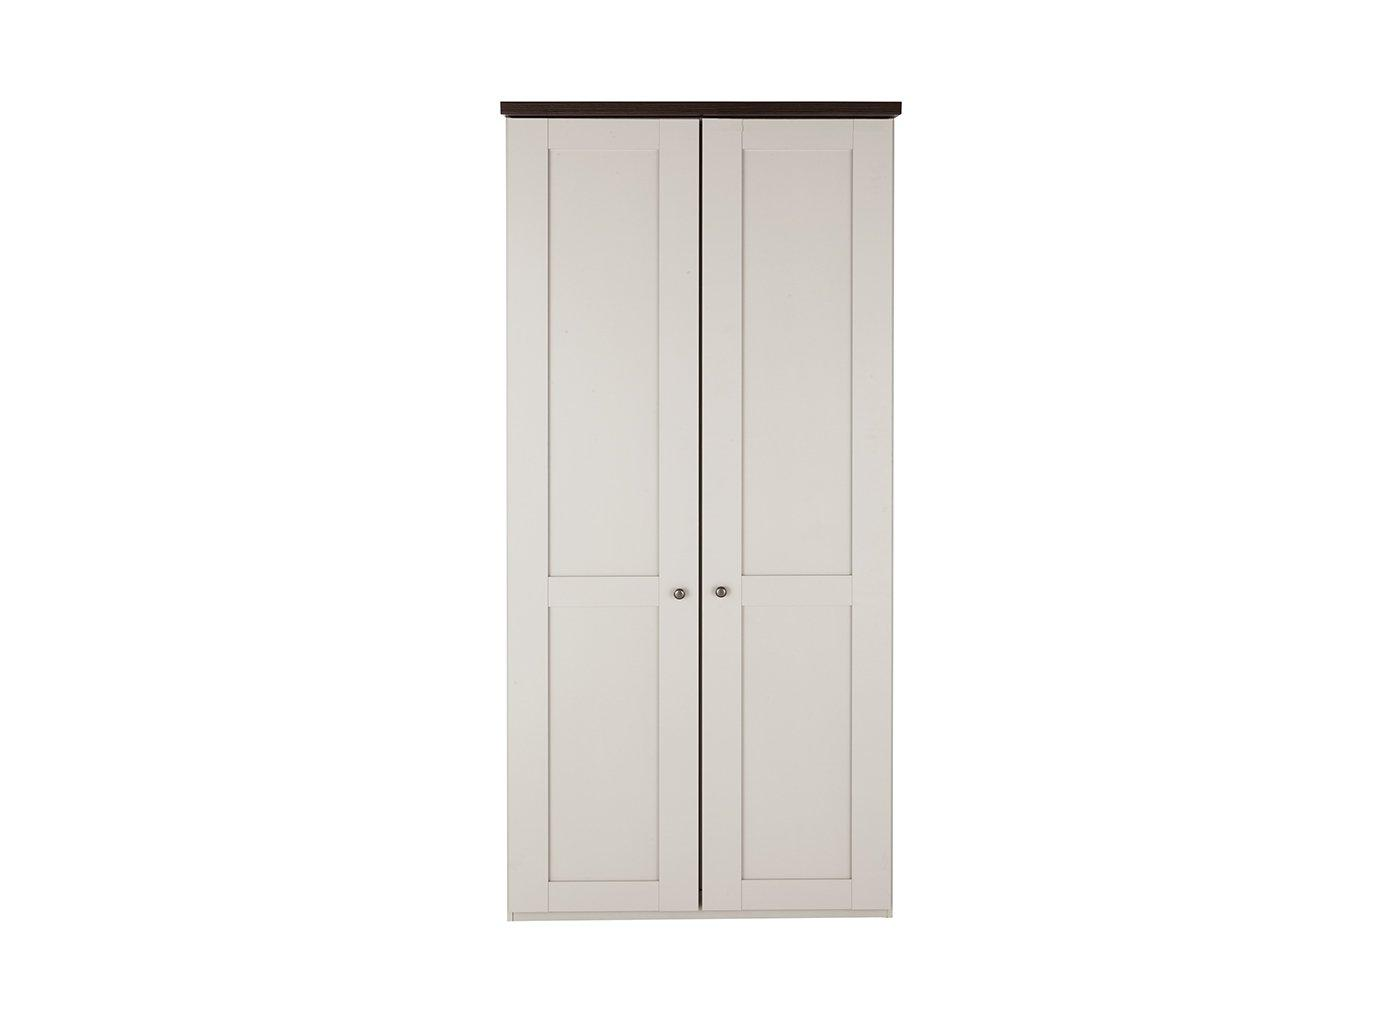 Sloane 2 Door Wardrobe – Champagne and Dark Wood (£599)